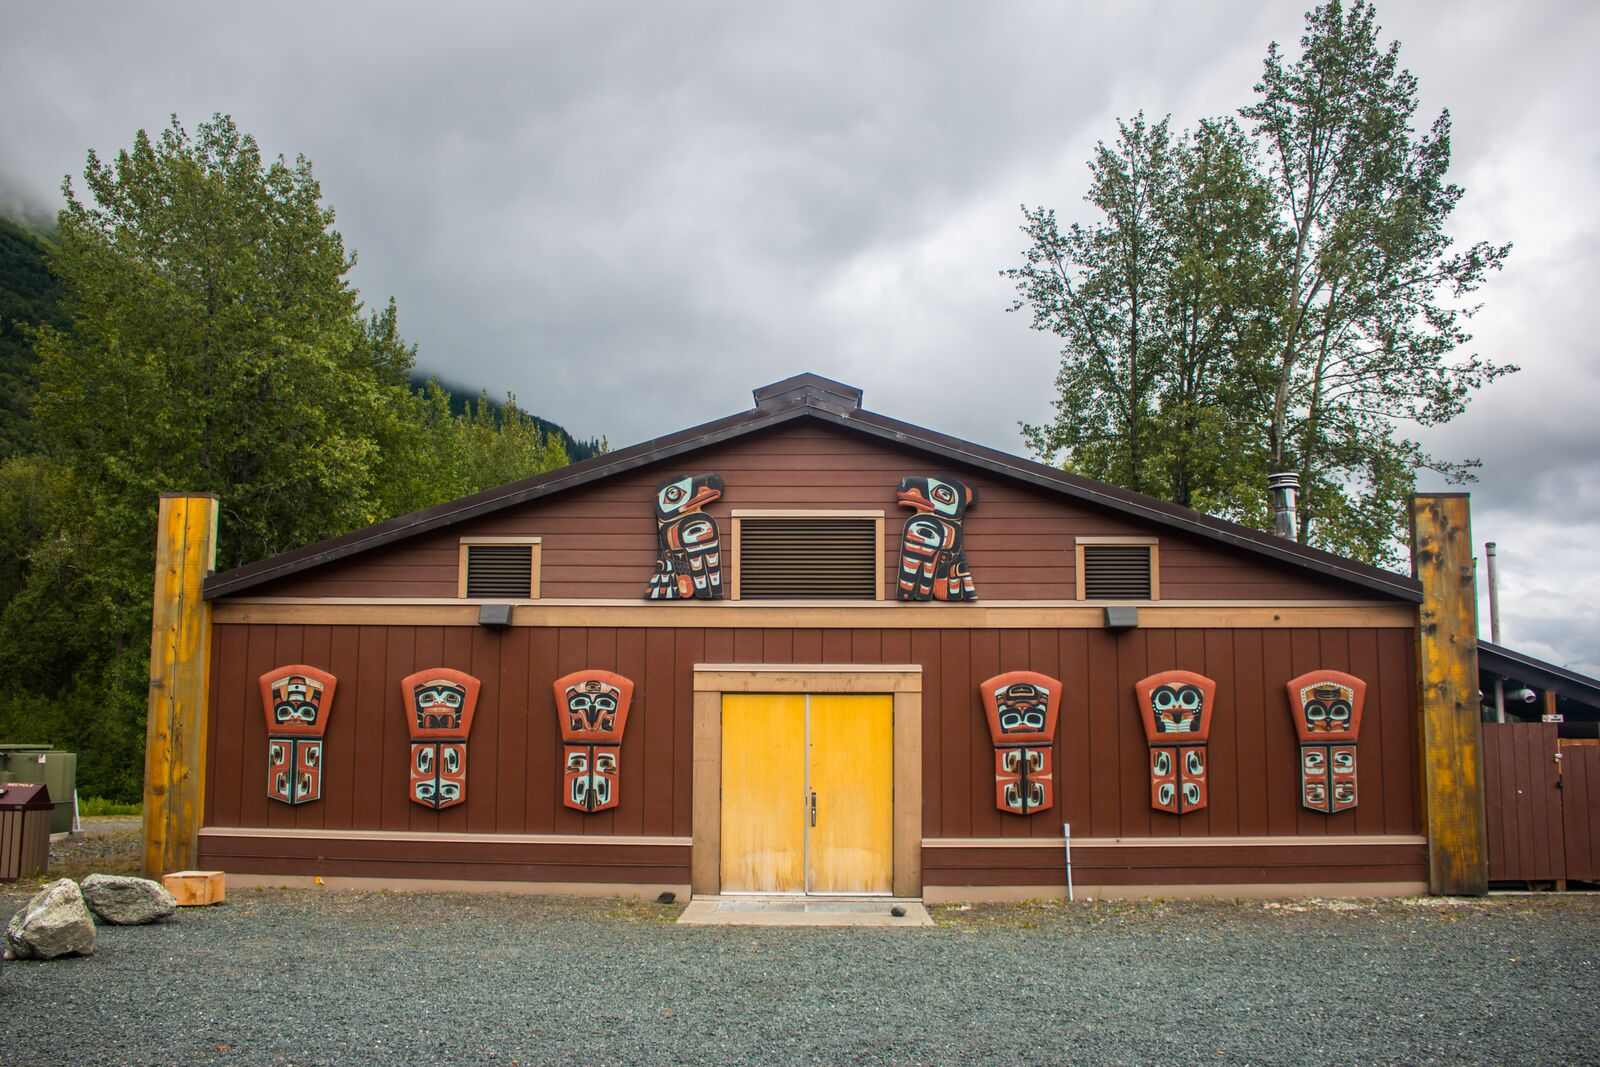 Constructed in 2015, the Klukwan Heritage Center offers a cultural experience unlike any other!